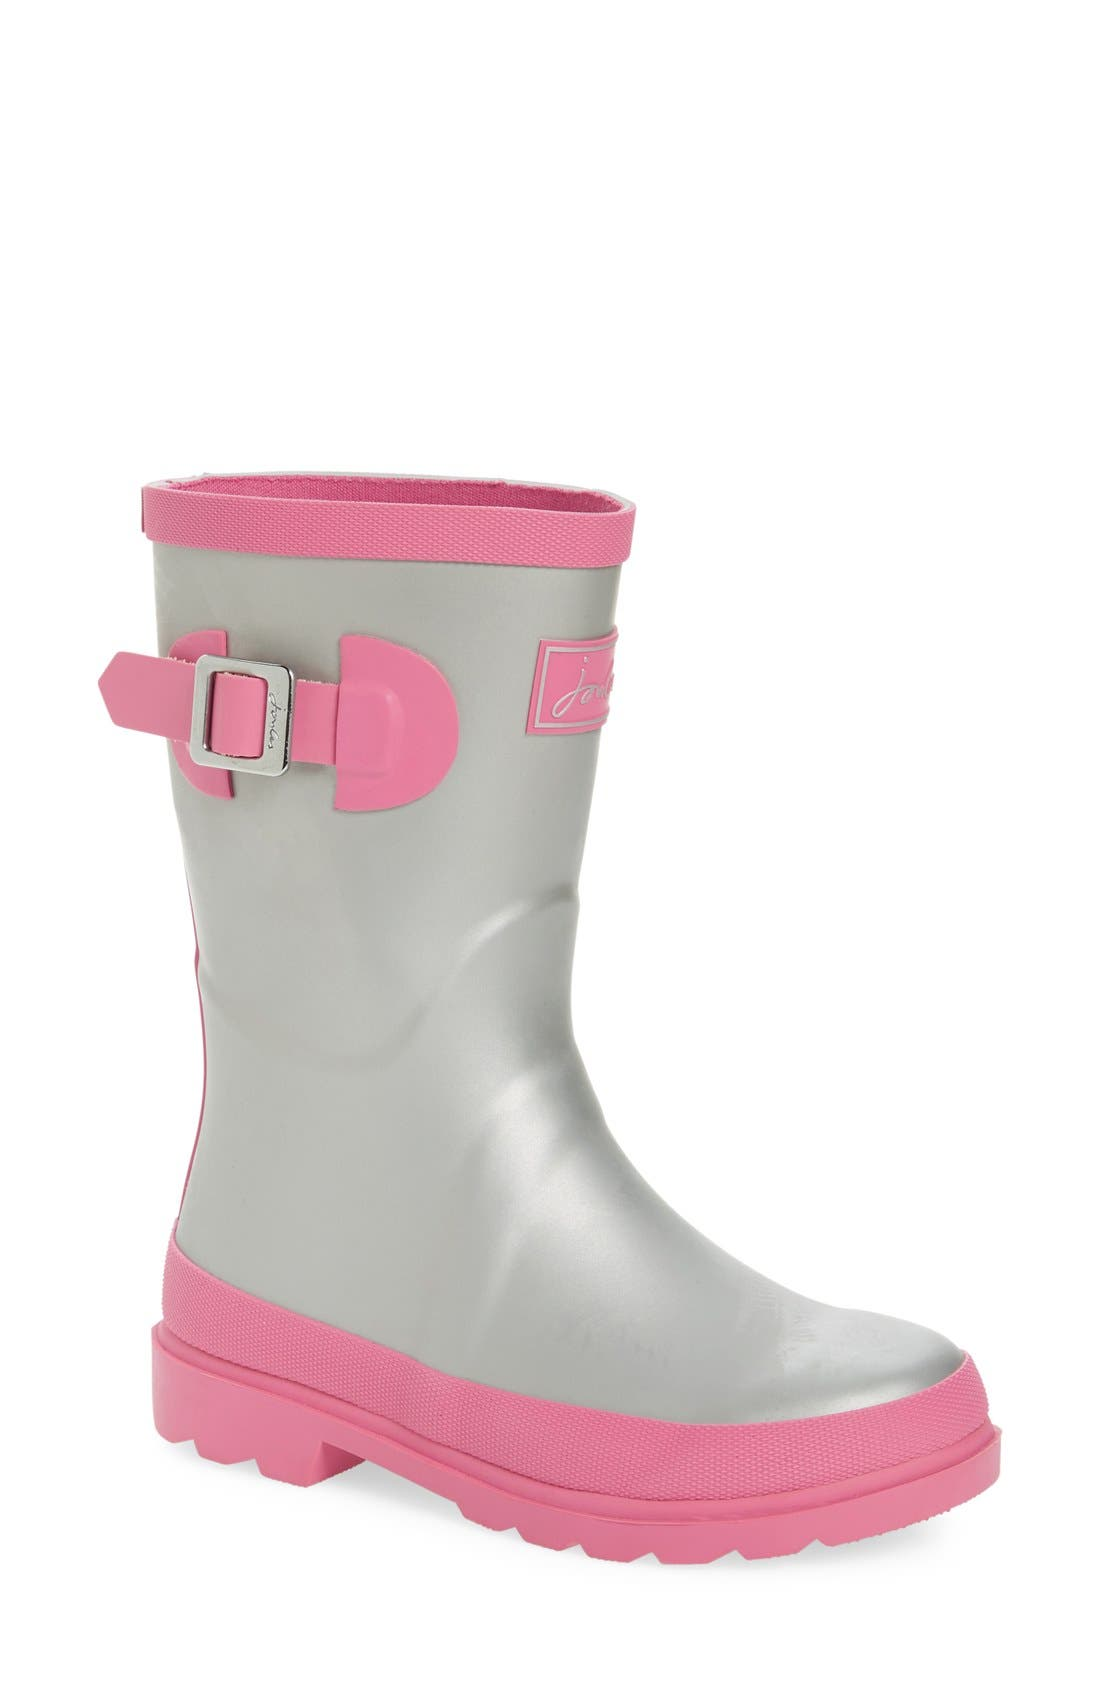 Joules Field Welly Rain Boot (Walker, Toddler, Little Kid & Big Kid)